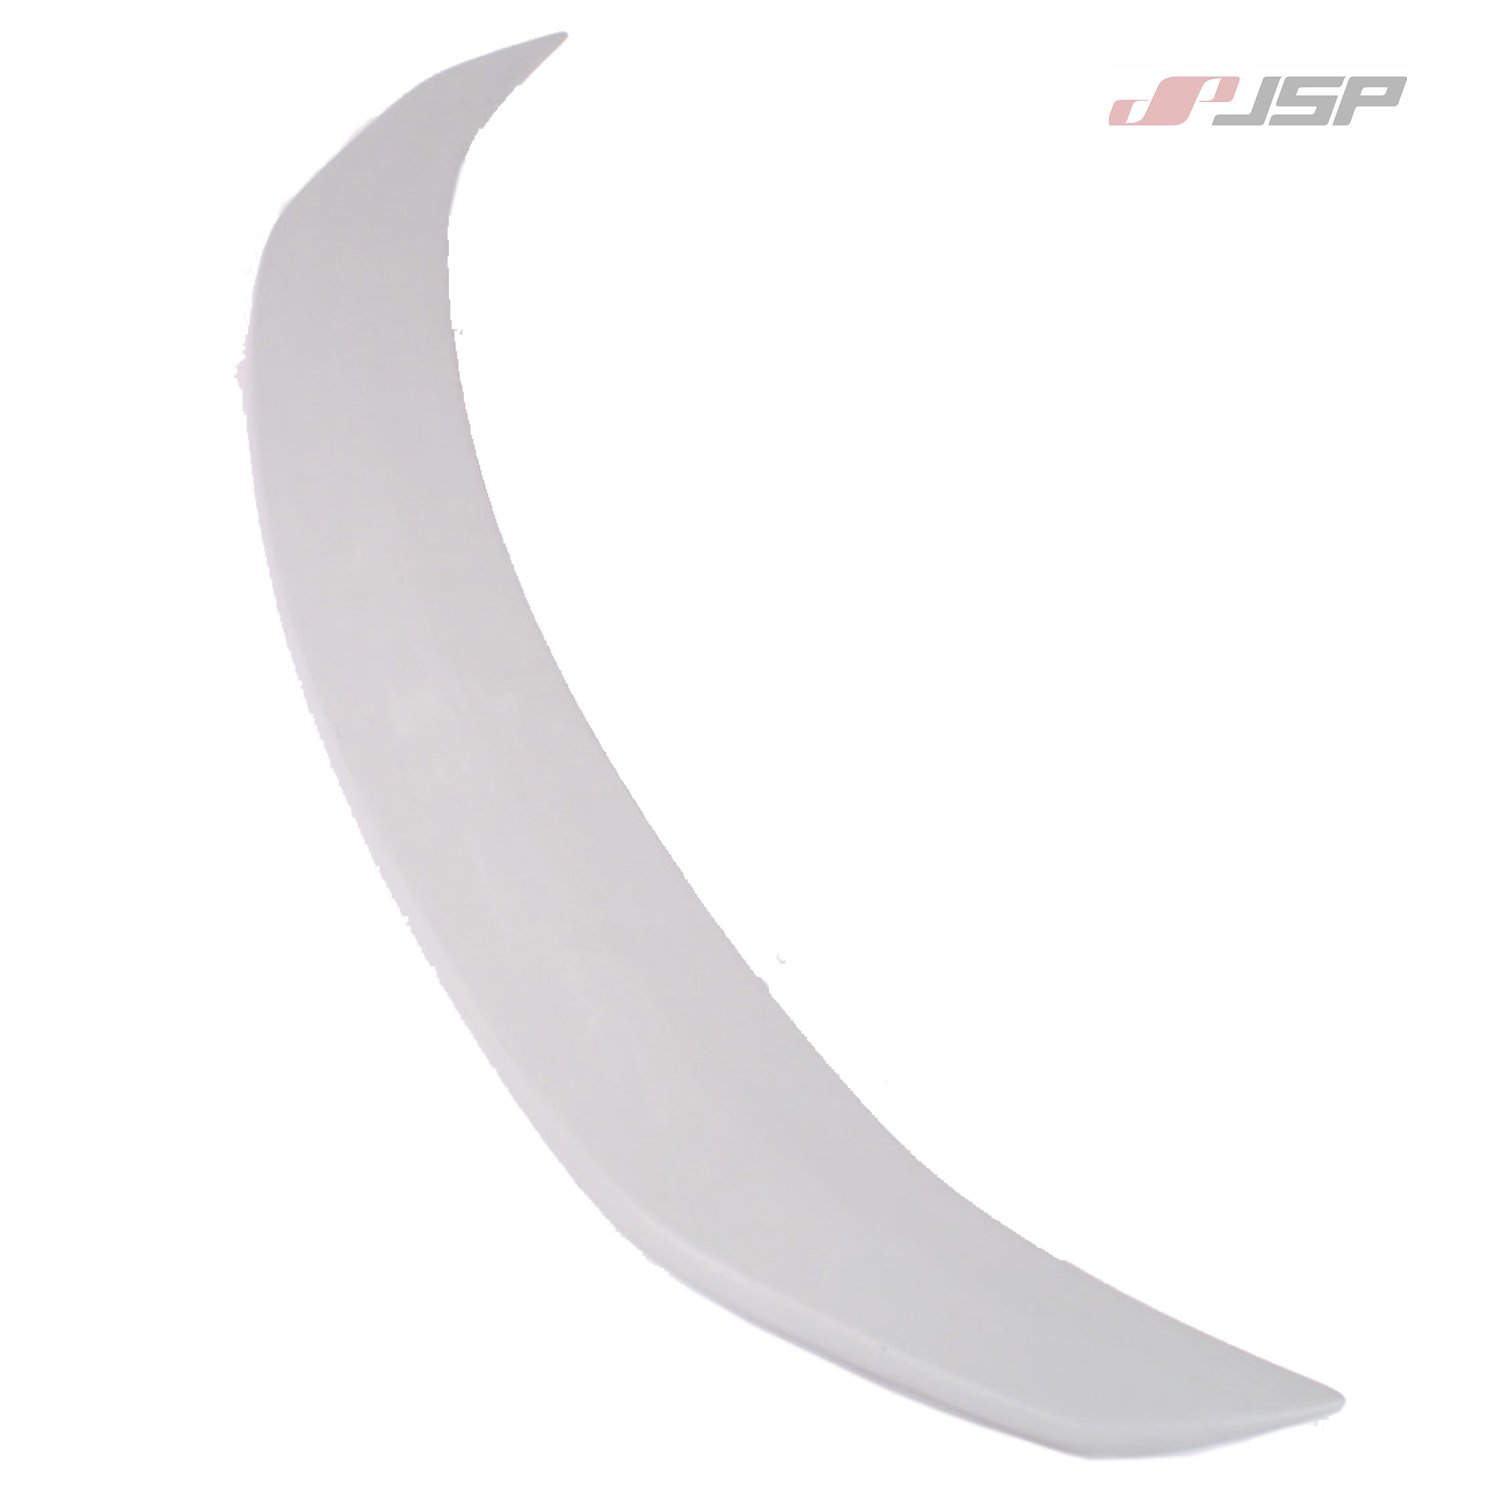 JSP Painted Rear Wing Lip Spoiler Compatible with 2010-2012 Ford Taurus SHO UH Tuxedo Black Factory Style 333043